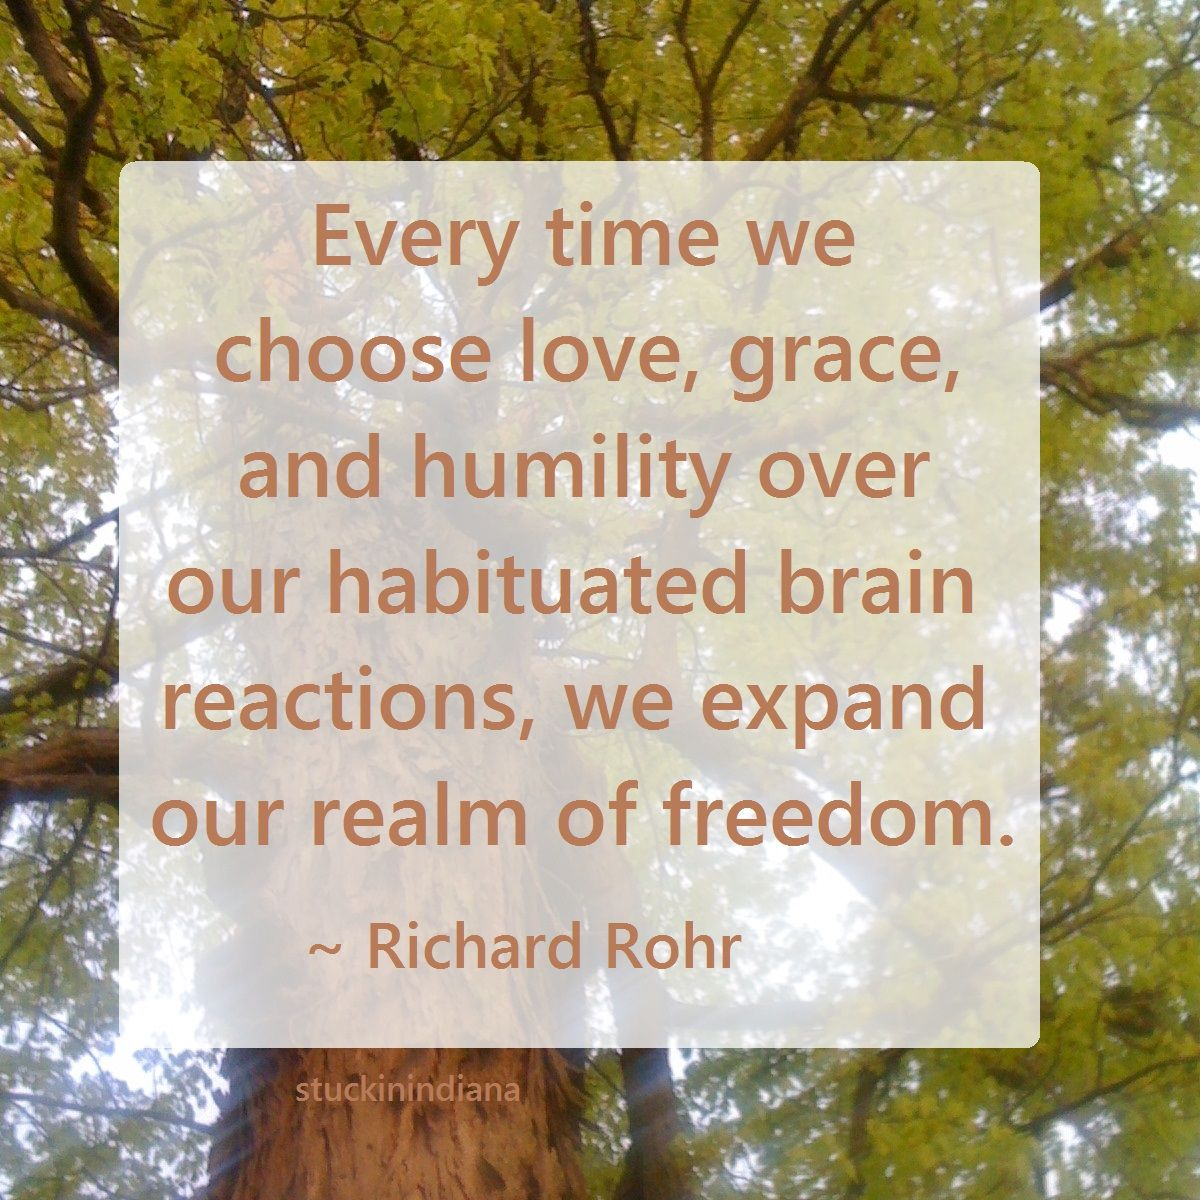 Every Time We Choose Love Grace And Humility Over Our Habituated Brain Reactions We Expand Our Realm Of Freedom Richard Rohr Quotes Choose Love Humility